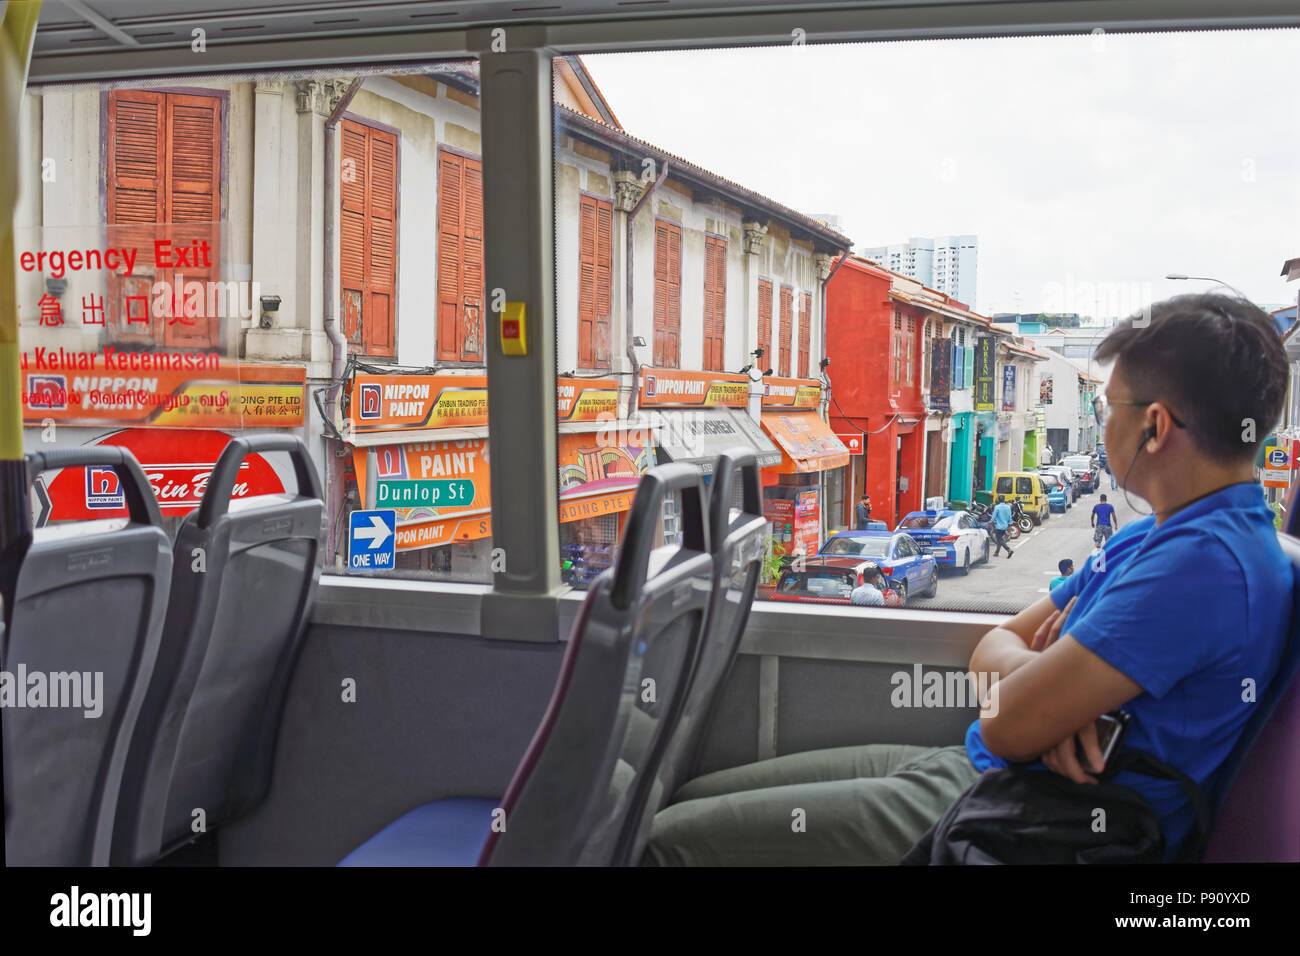 2018 Singapore. Bus ride along Jalan Besar looking at colonial era shophouses which are under conservation. - Stock Image